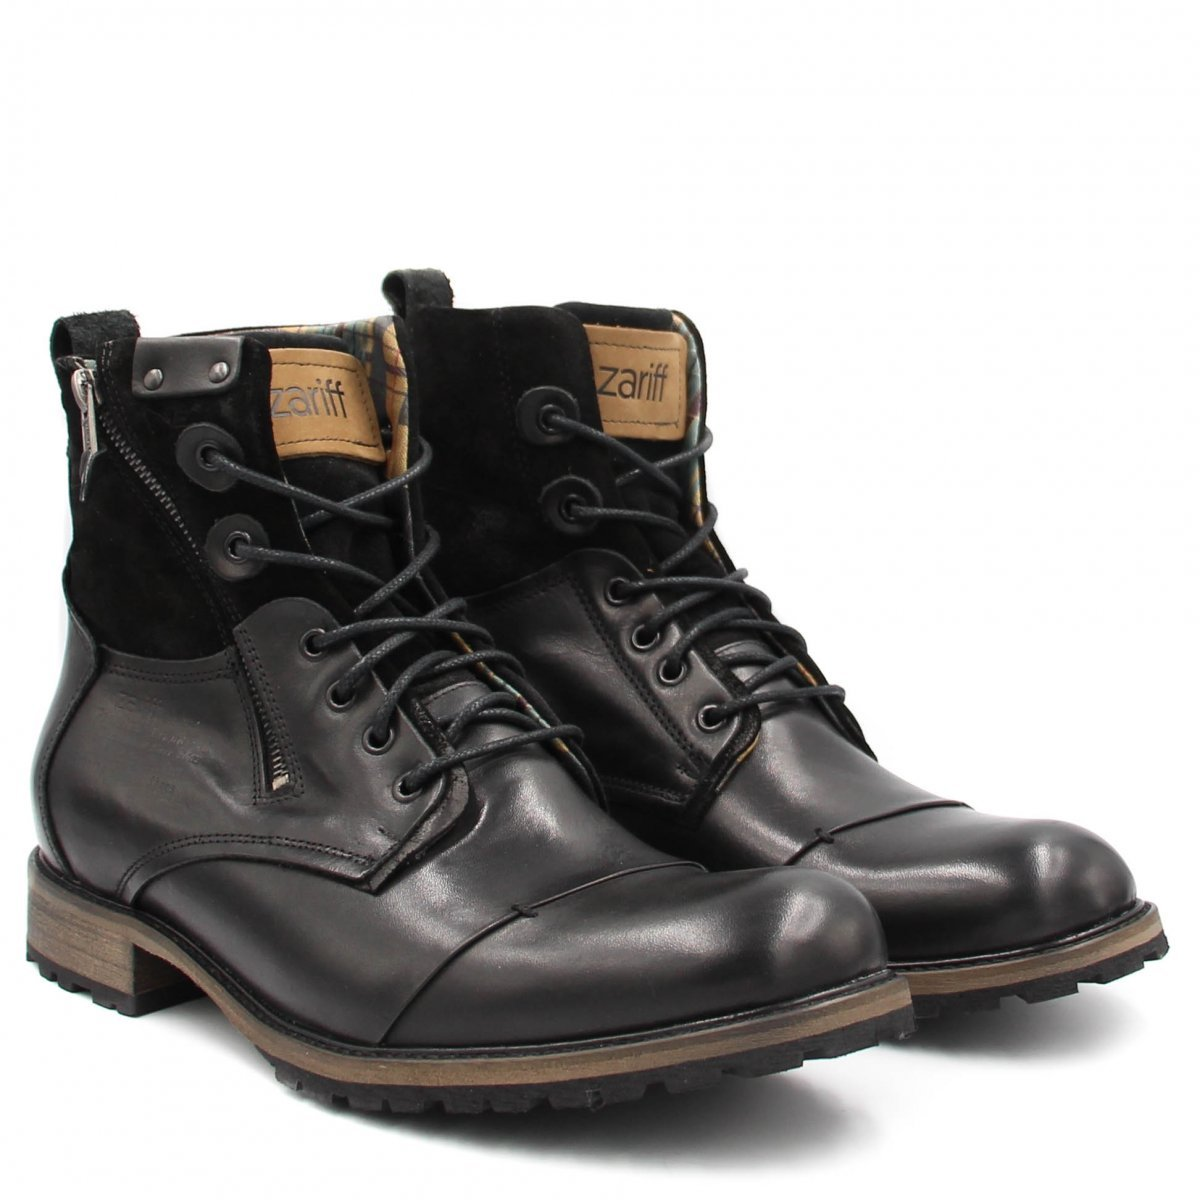 Bota Masculina Zariff Shoes Preto Bota Coturno Zariff Coturno Shoes Rock tUZqavAq